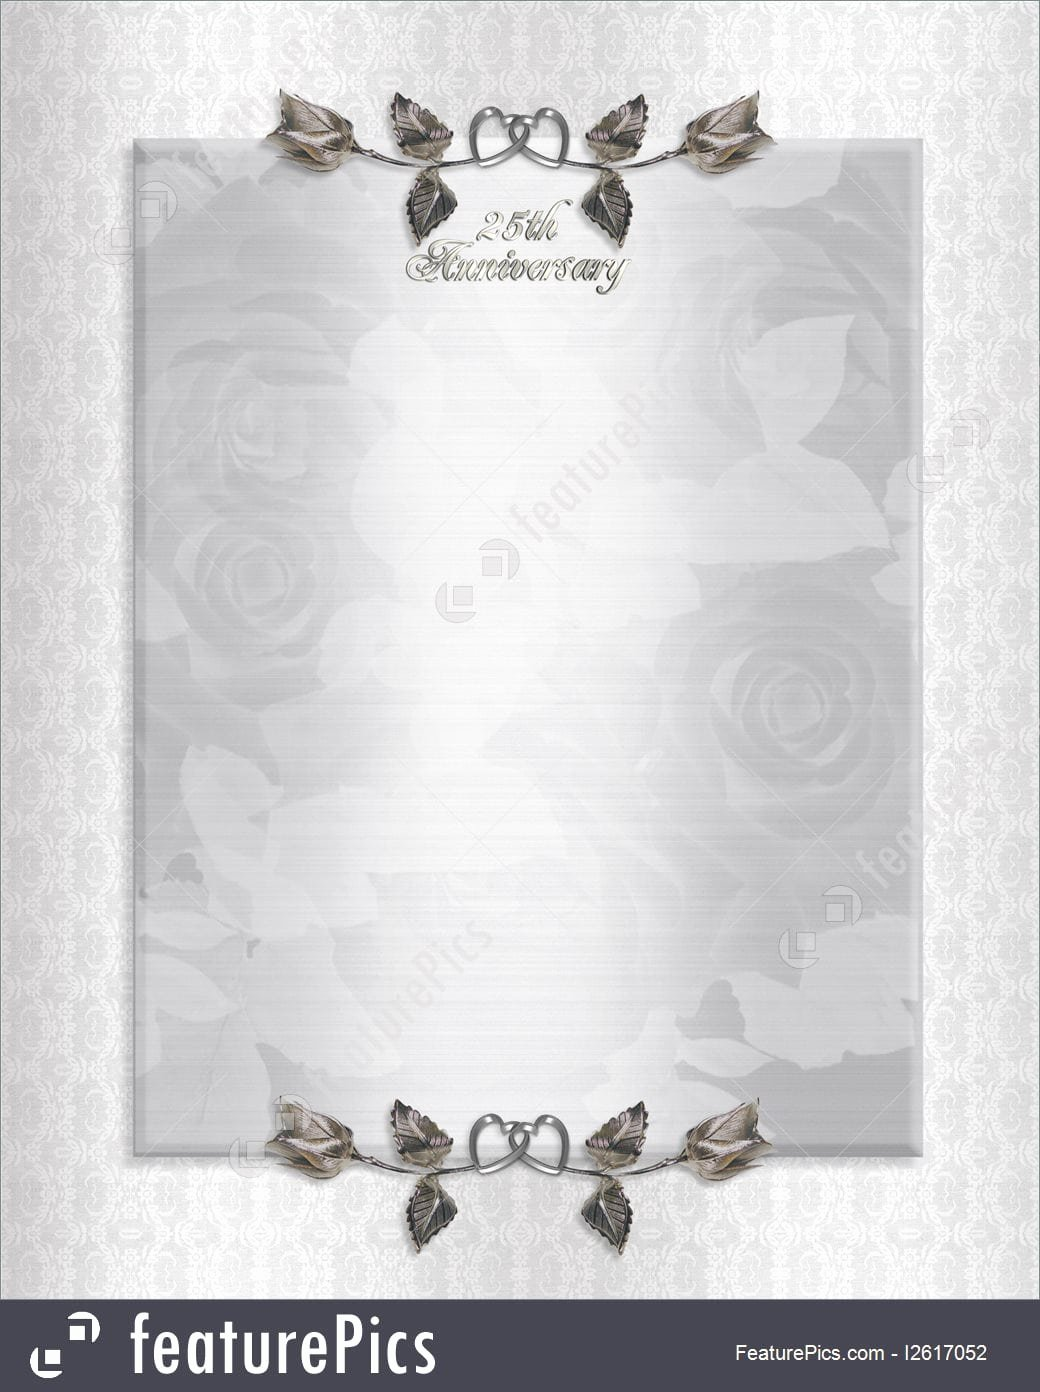 Wedding Anniversary Invitation Template Beautiful Silver Wedding Anniversary Invitations Templates